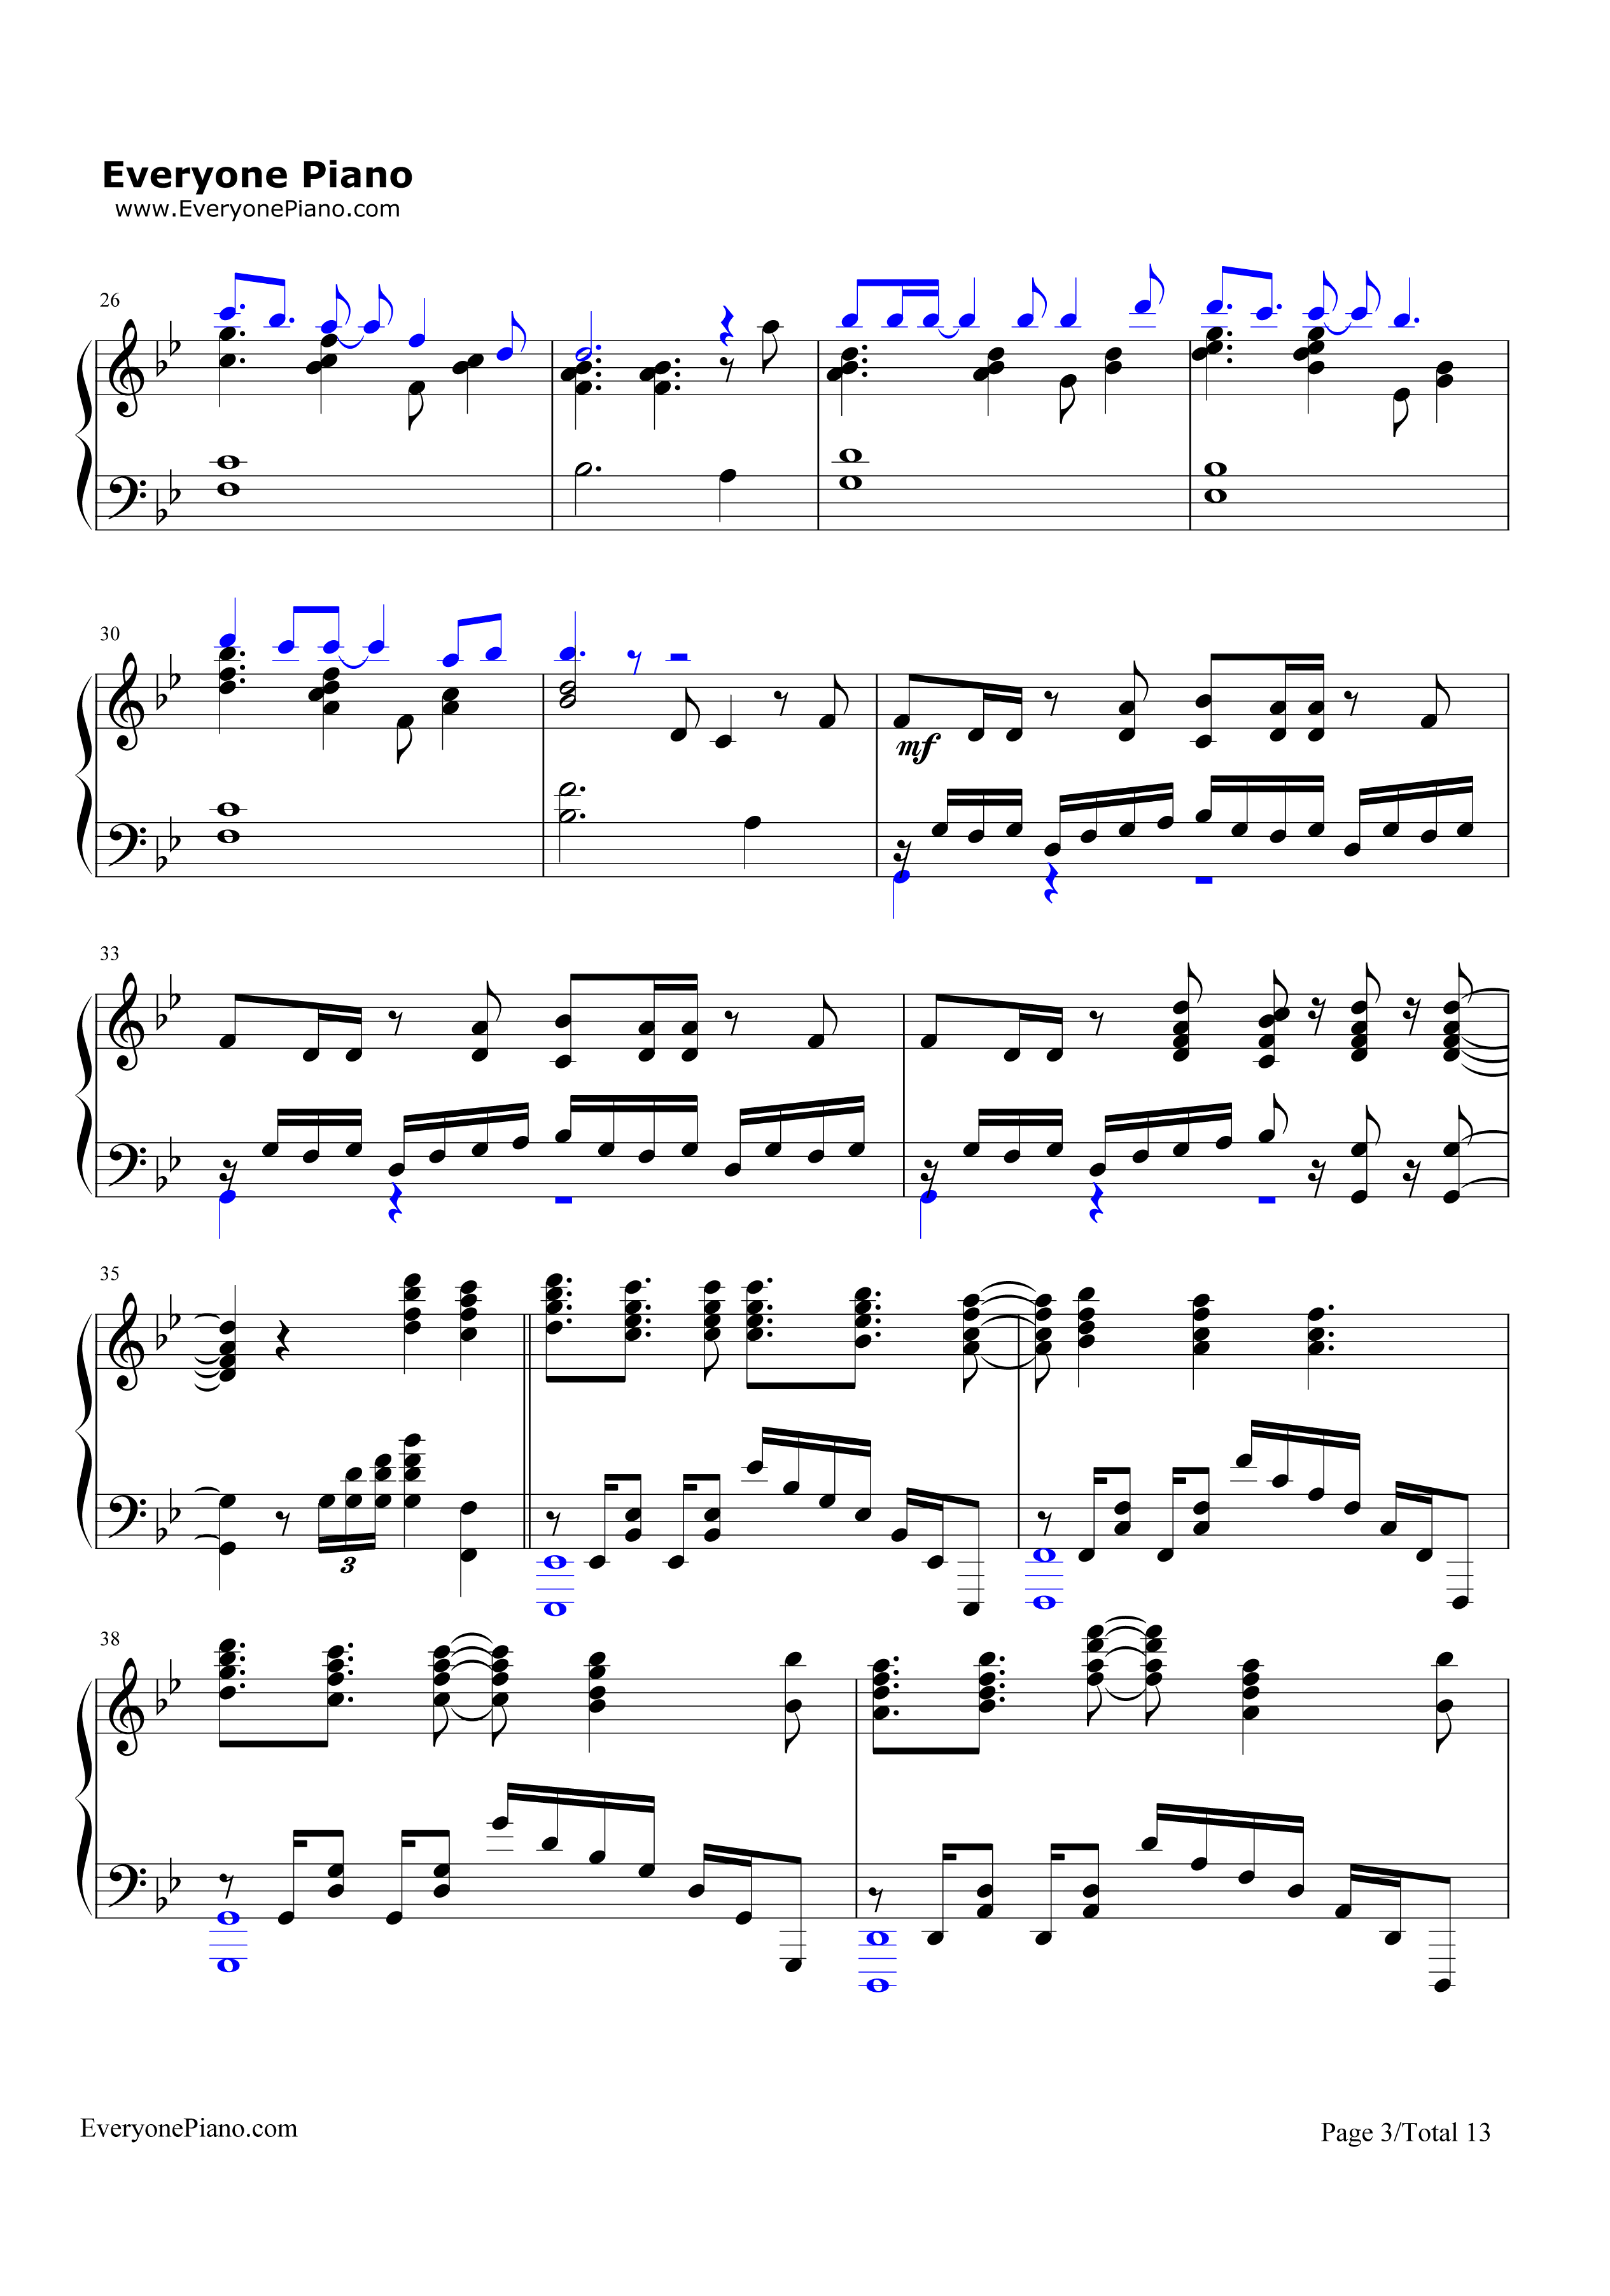 Unravel-Tokyo Ghoul Theme Stave Preview 3-Free Piano Sheet Music u0026 Piano Chords